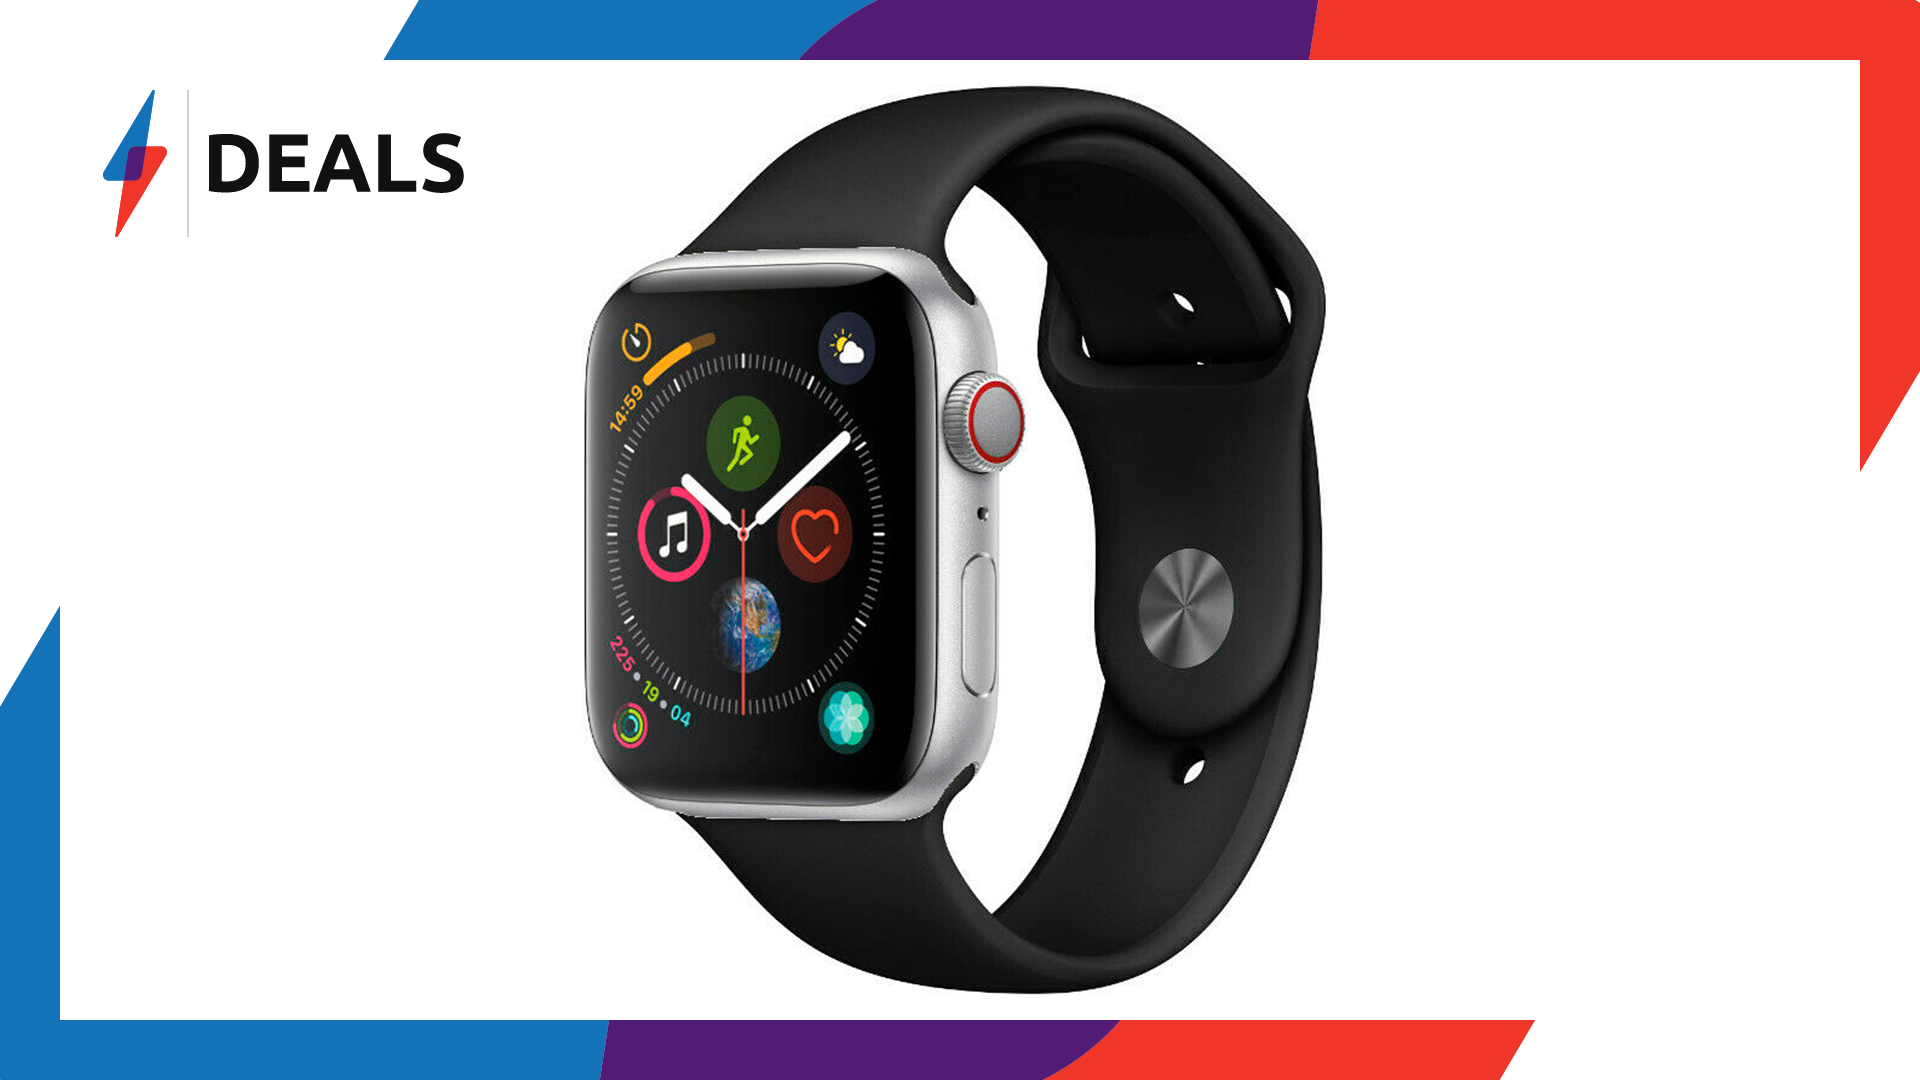 Price Drop: Save over £70 on the flashy Apple Watch Series 4